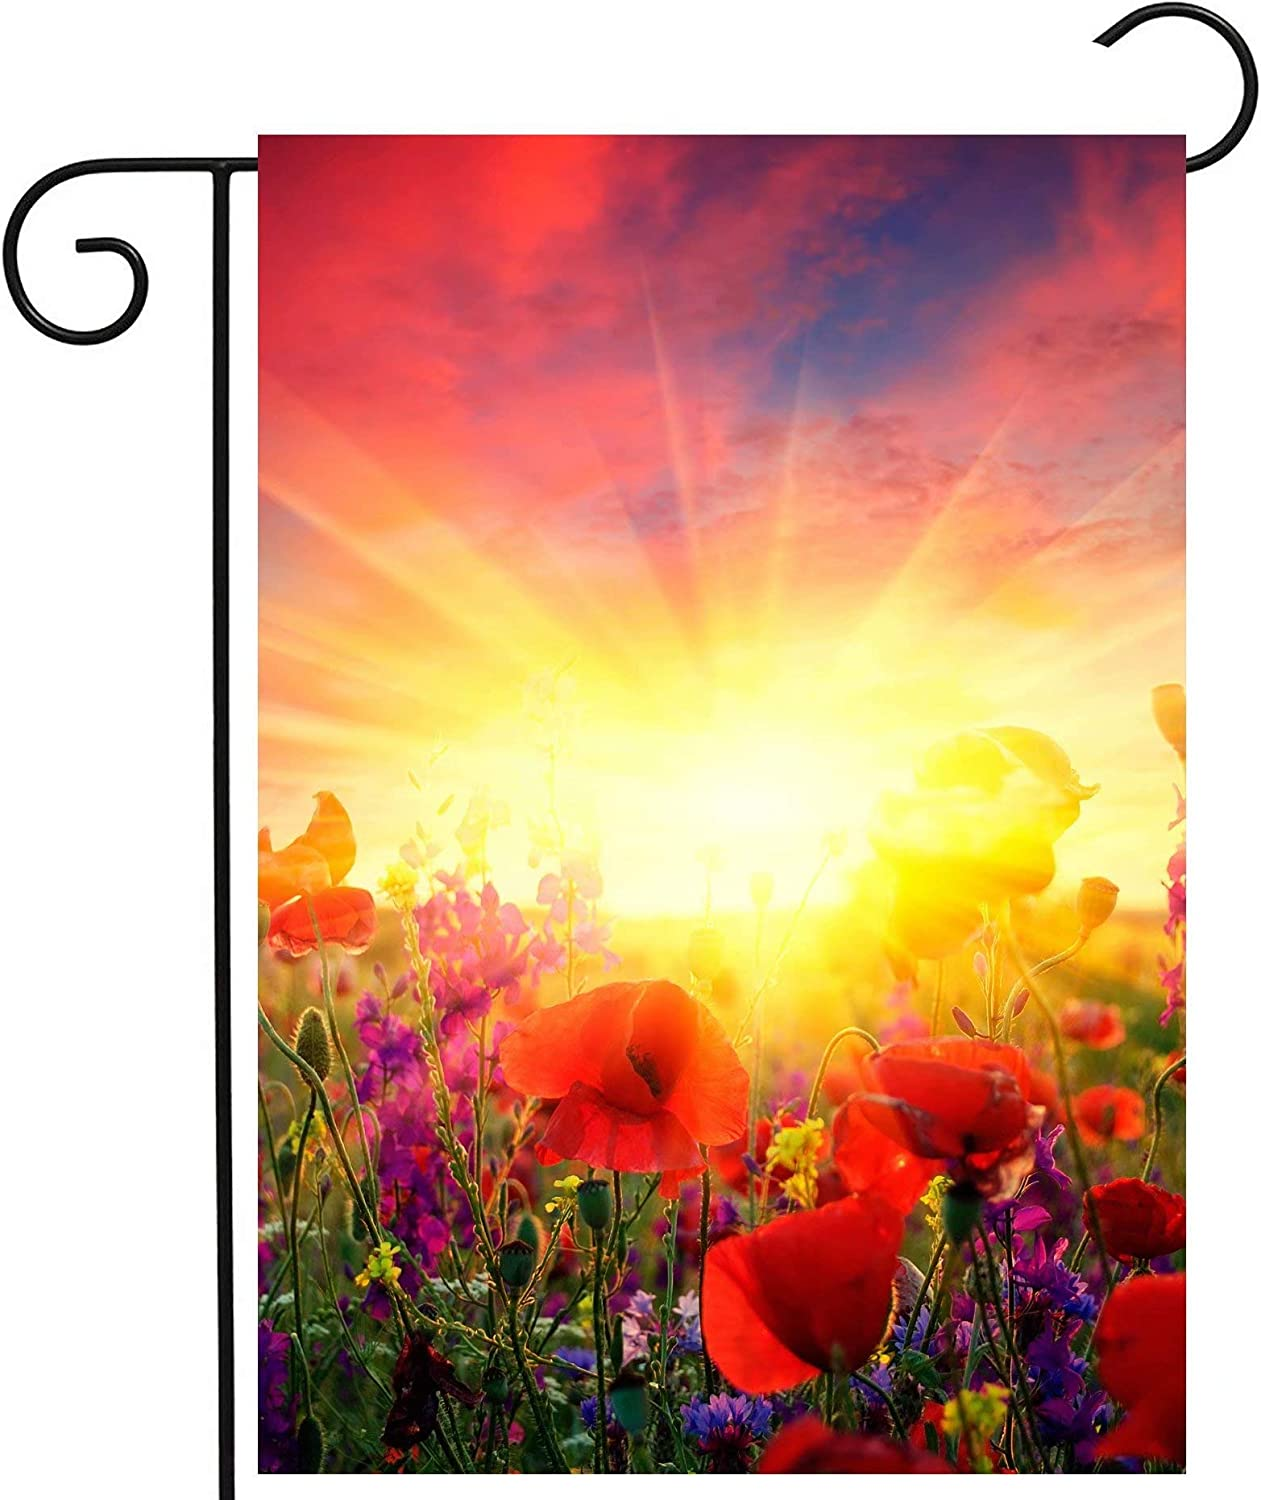 """ShineSnow Floral Flowers Red Poppies Field Sunlight Sunrise Autumn Summer Spring Garden Yard Flag 12""""x 18"""" Double Sided Polyester Welcome House Flag Banners for Patio Lawn Outdoor Home Decor"""